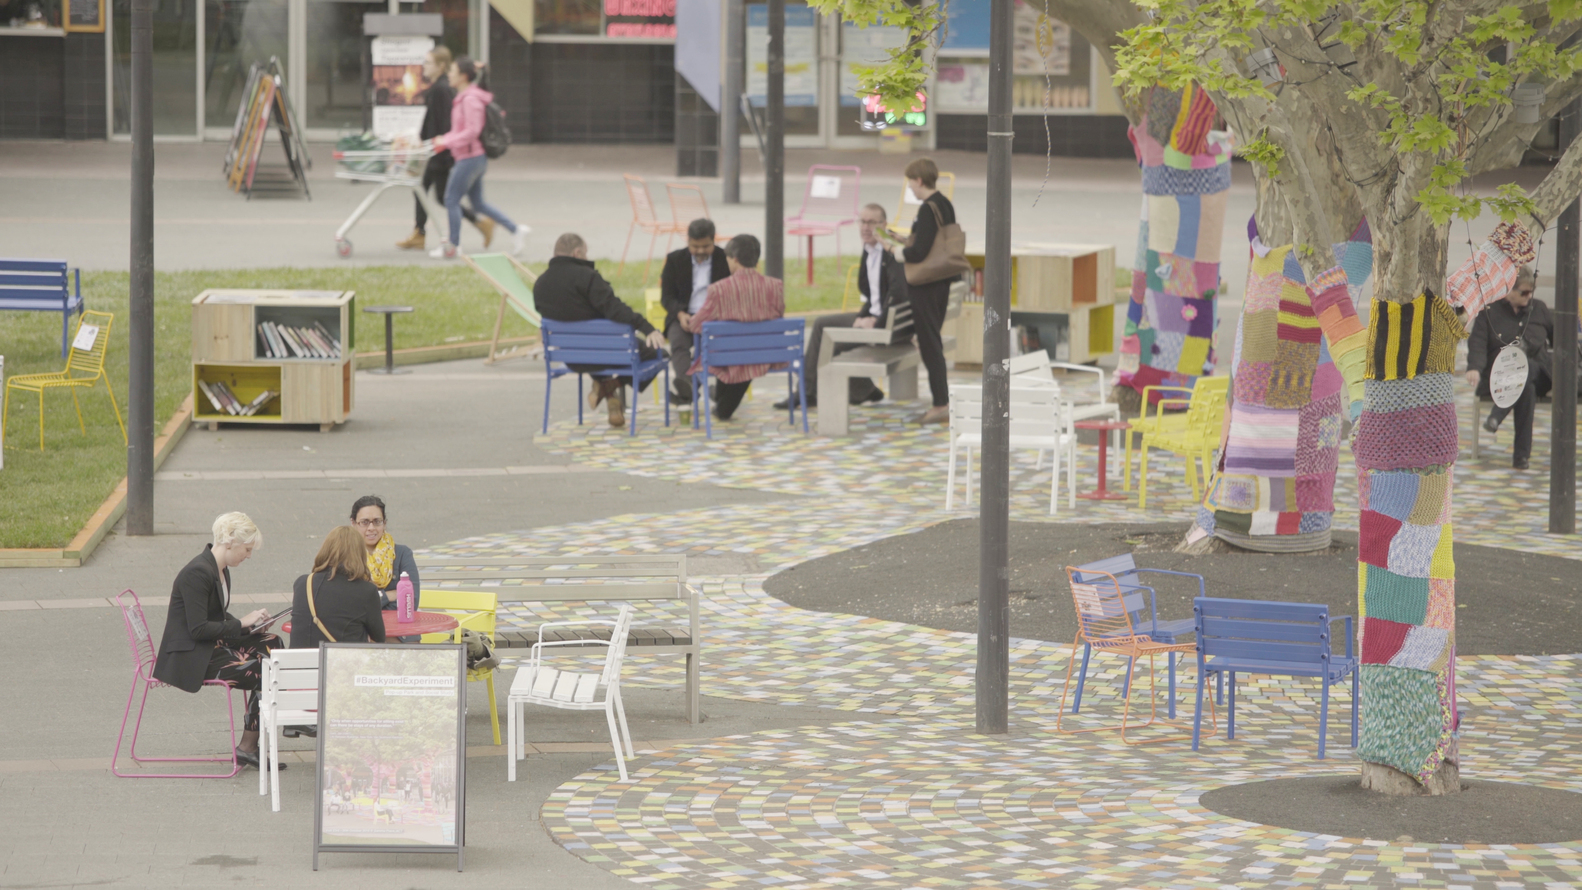 6 Low Cost Techniques To Activate Underused Urban Space Courtesy Of Street Furniture Australia